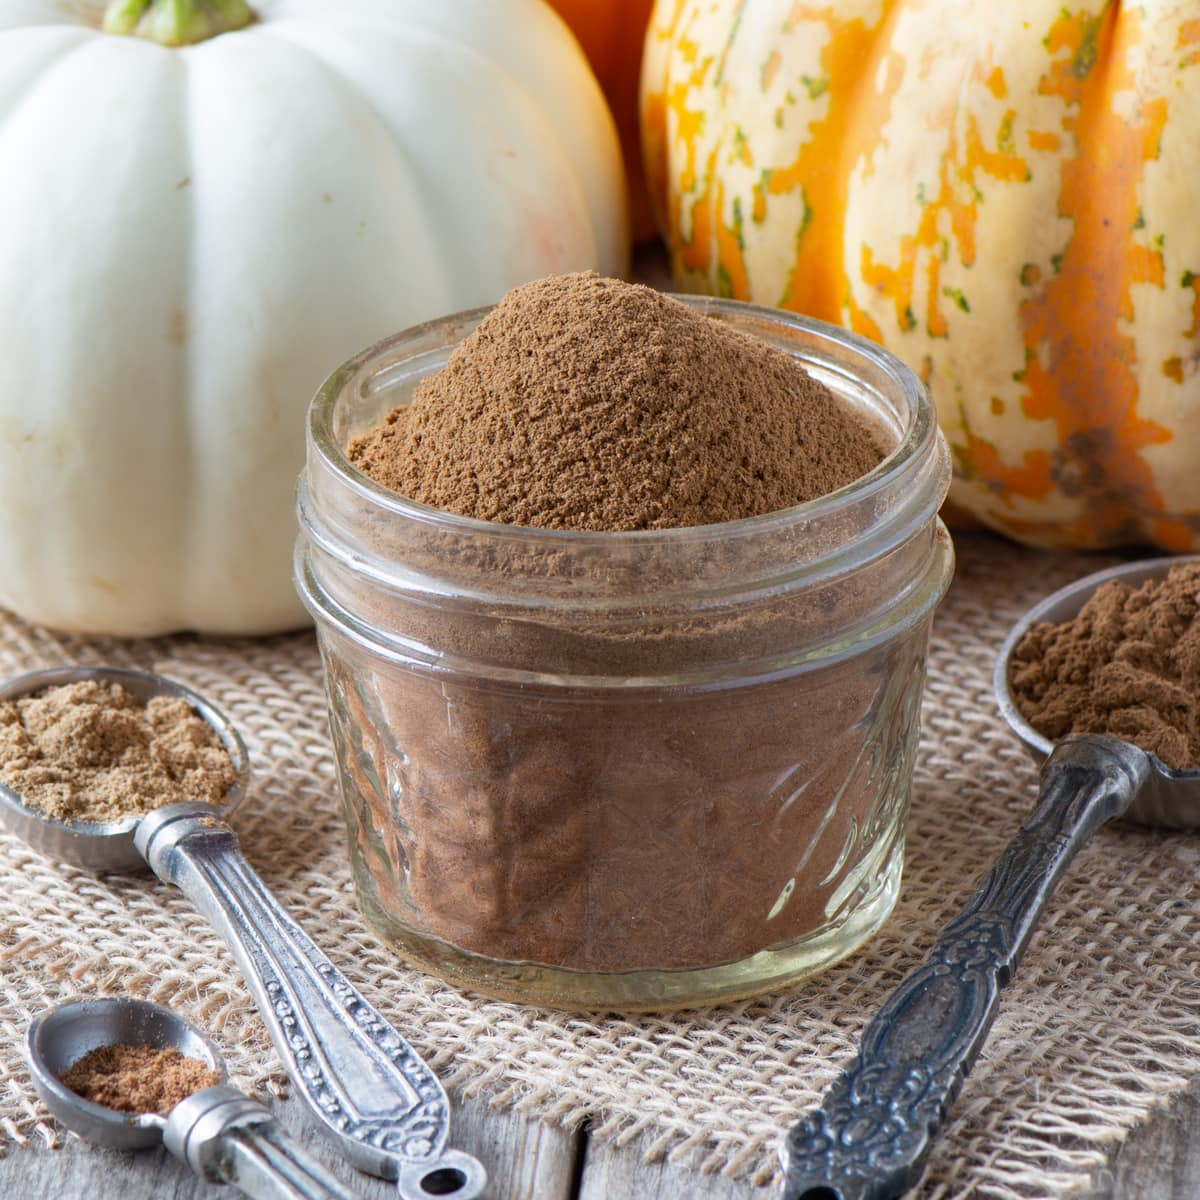 View of a small jar of pumpkin spice with the contents protruding from the top with spoons filled with the ingredients in the front and pumpkins in the background.